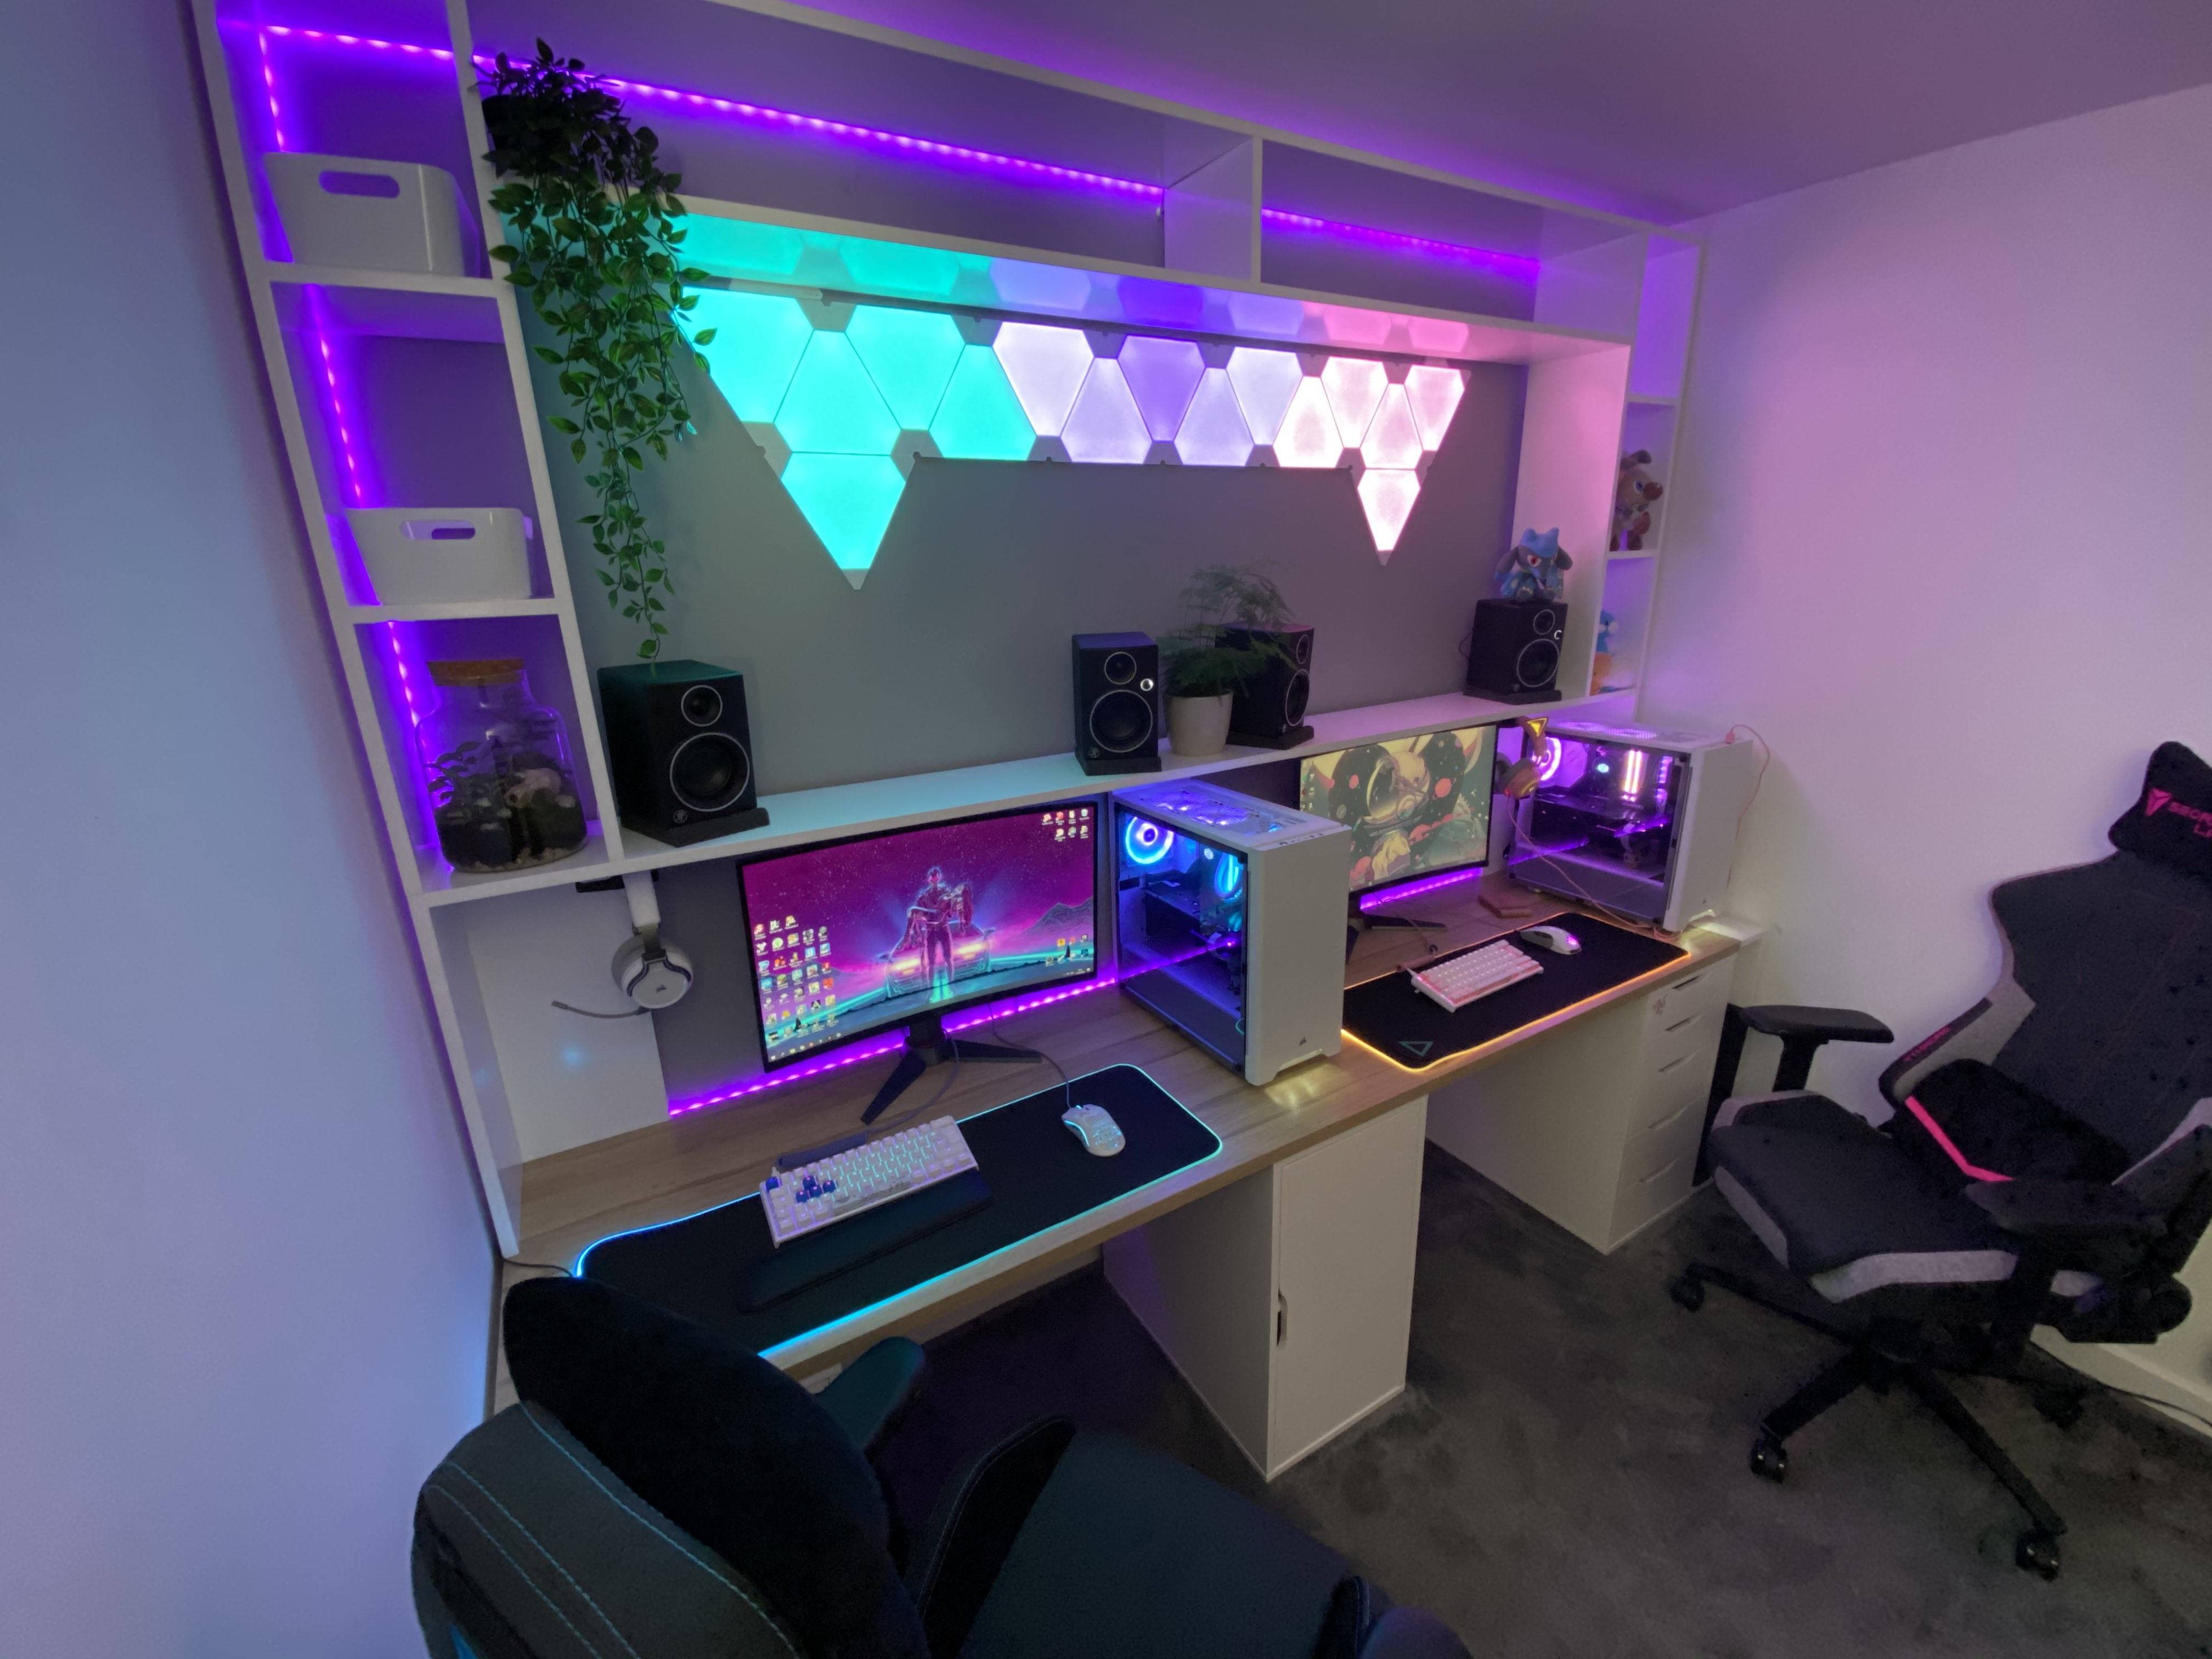 TheGamingSynths's Setup - Aesthetic His And Her Gaming Setup | Scooget